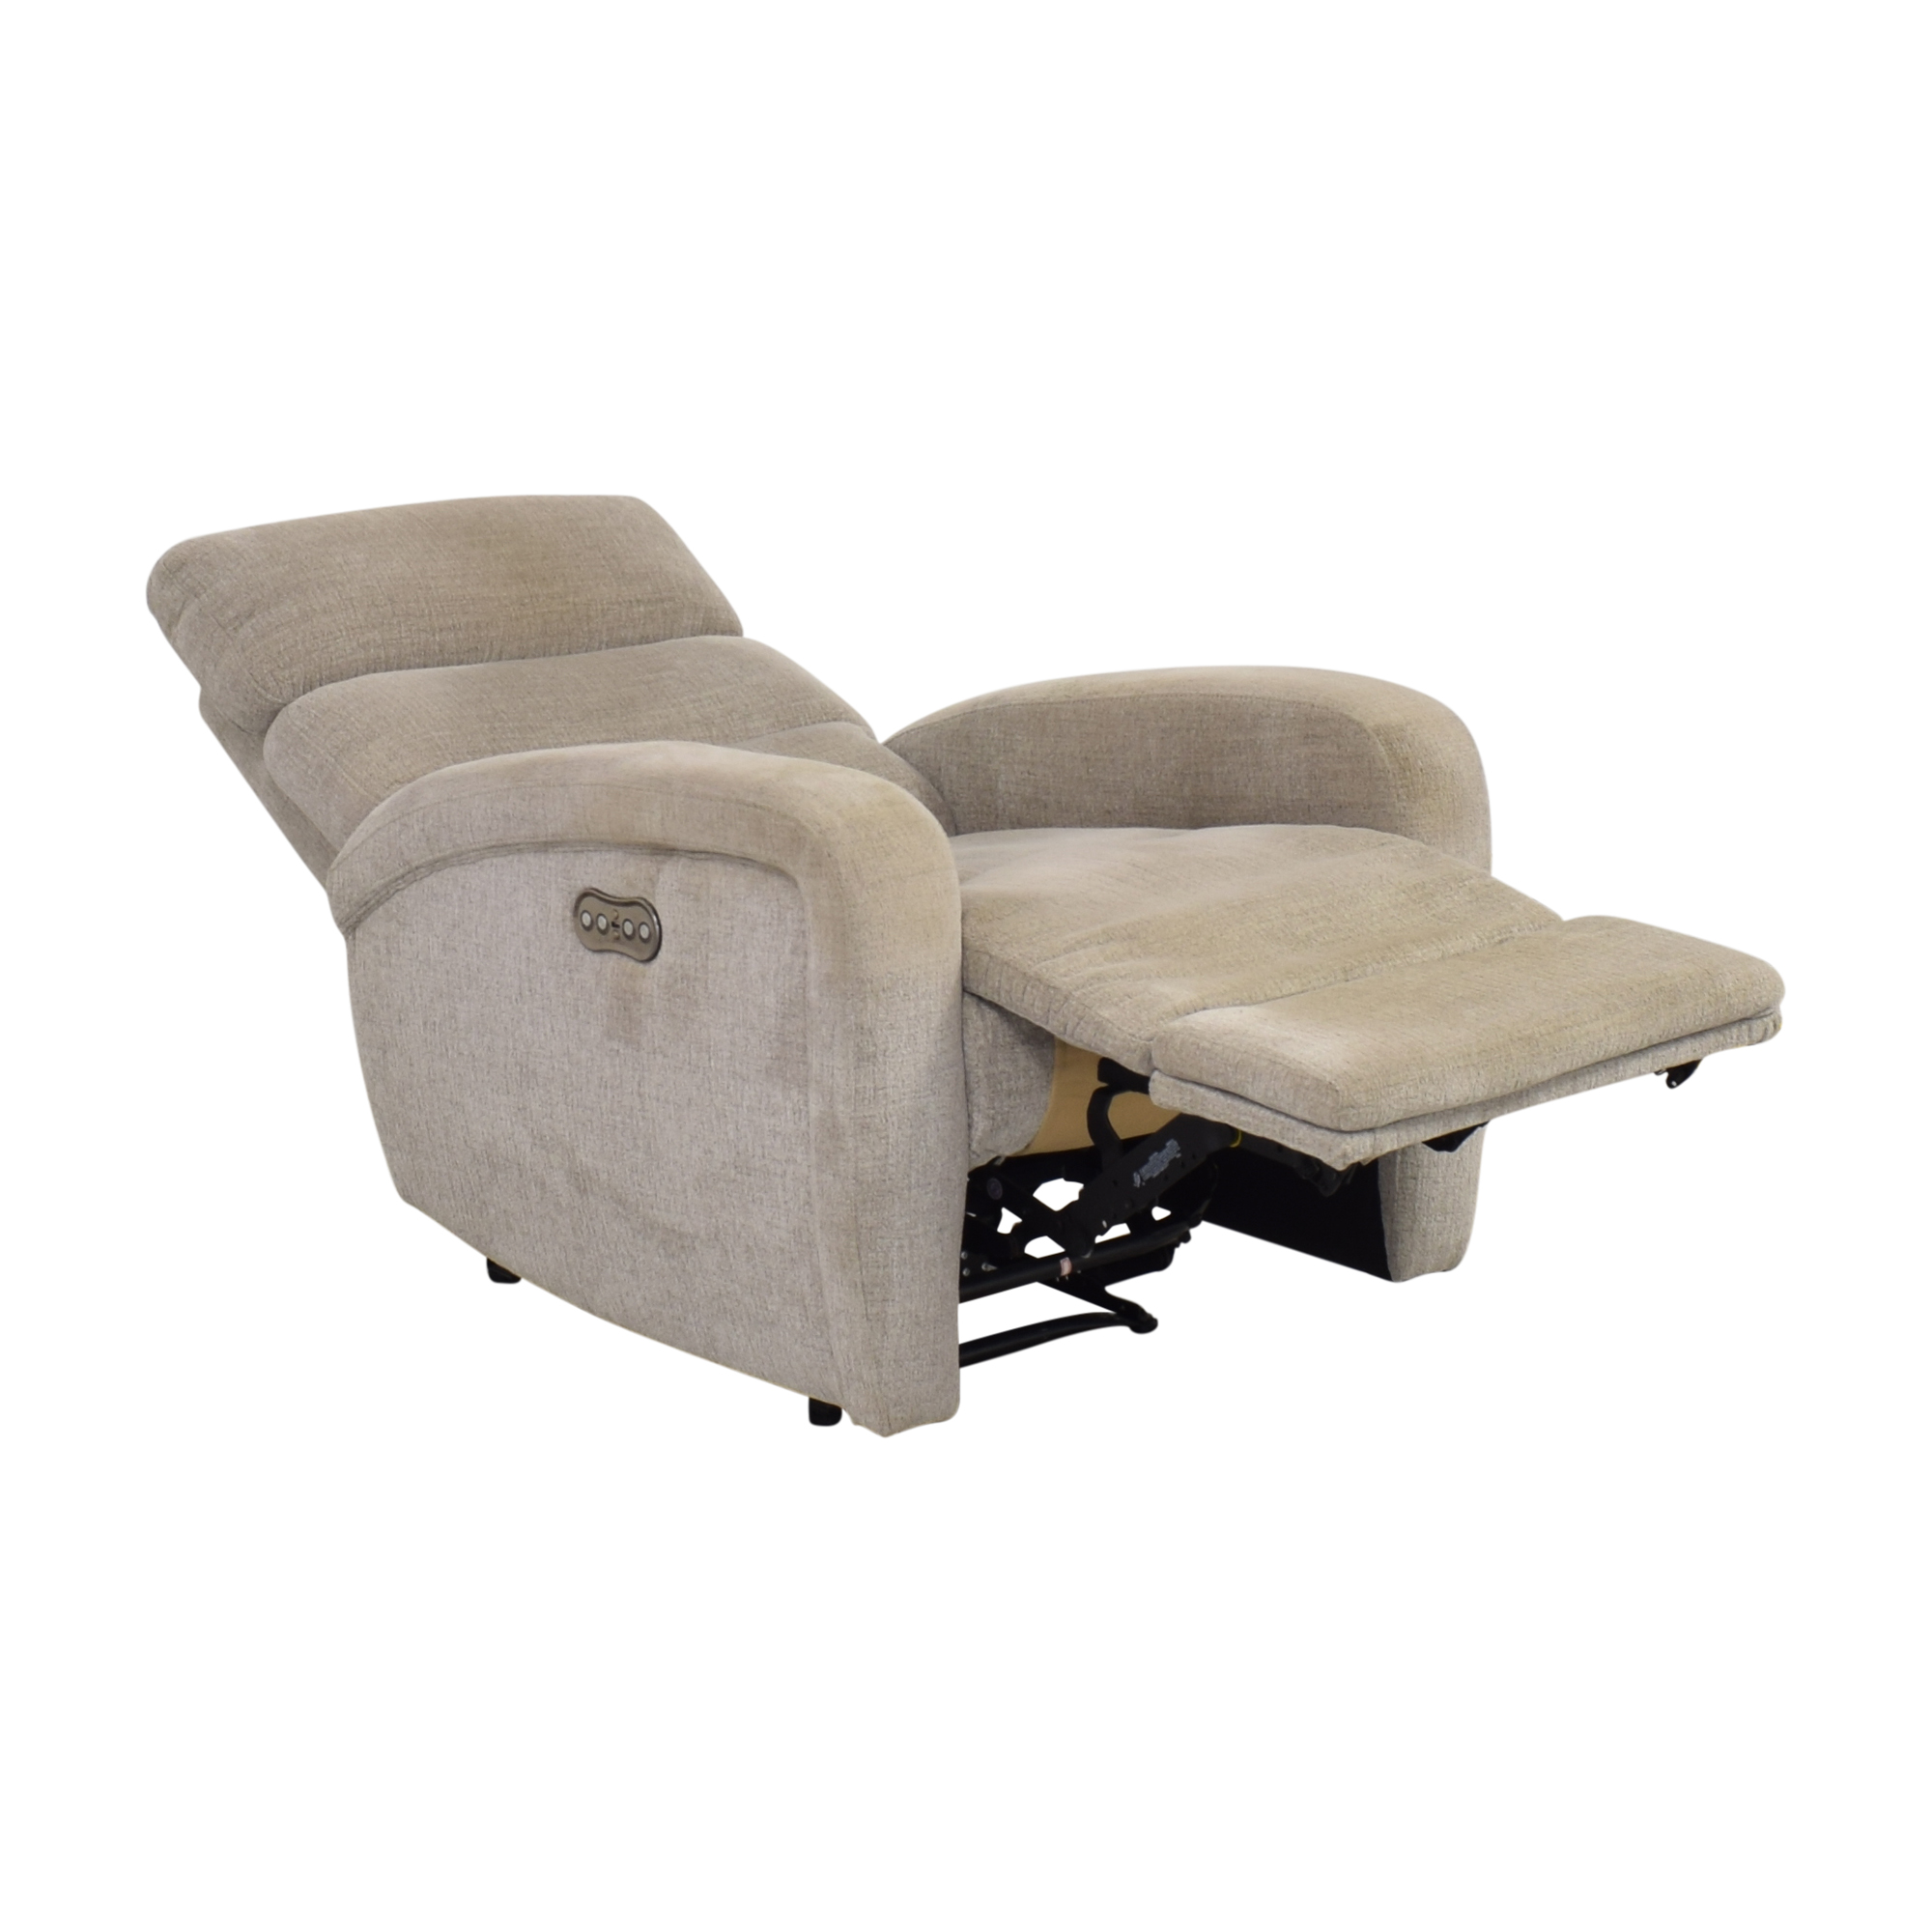 buy Macy's Stellarae Fabric Power Recliner Macy's Recliners